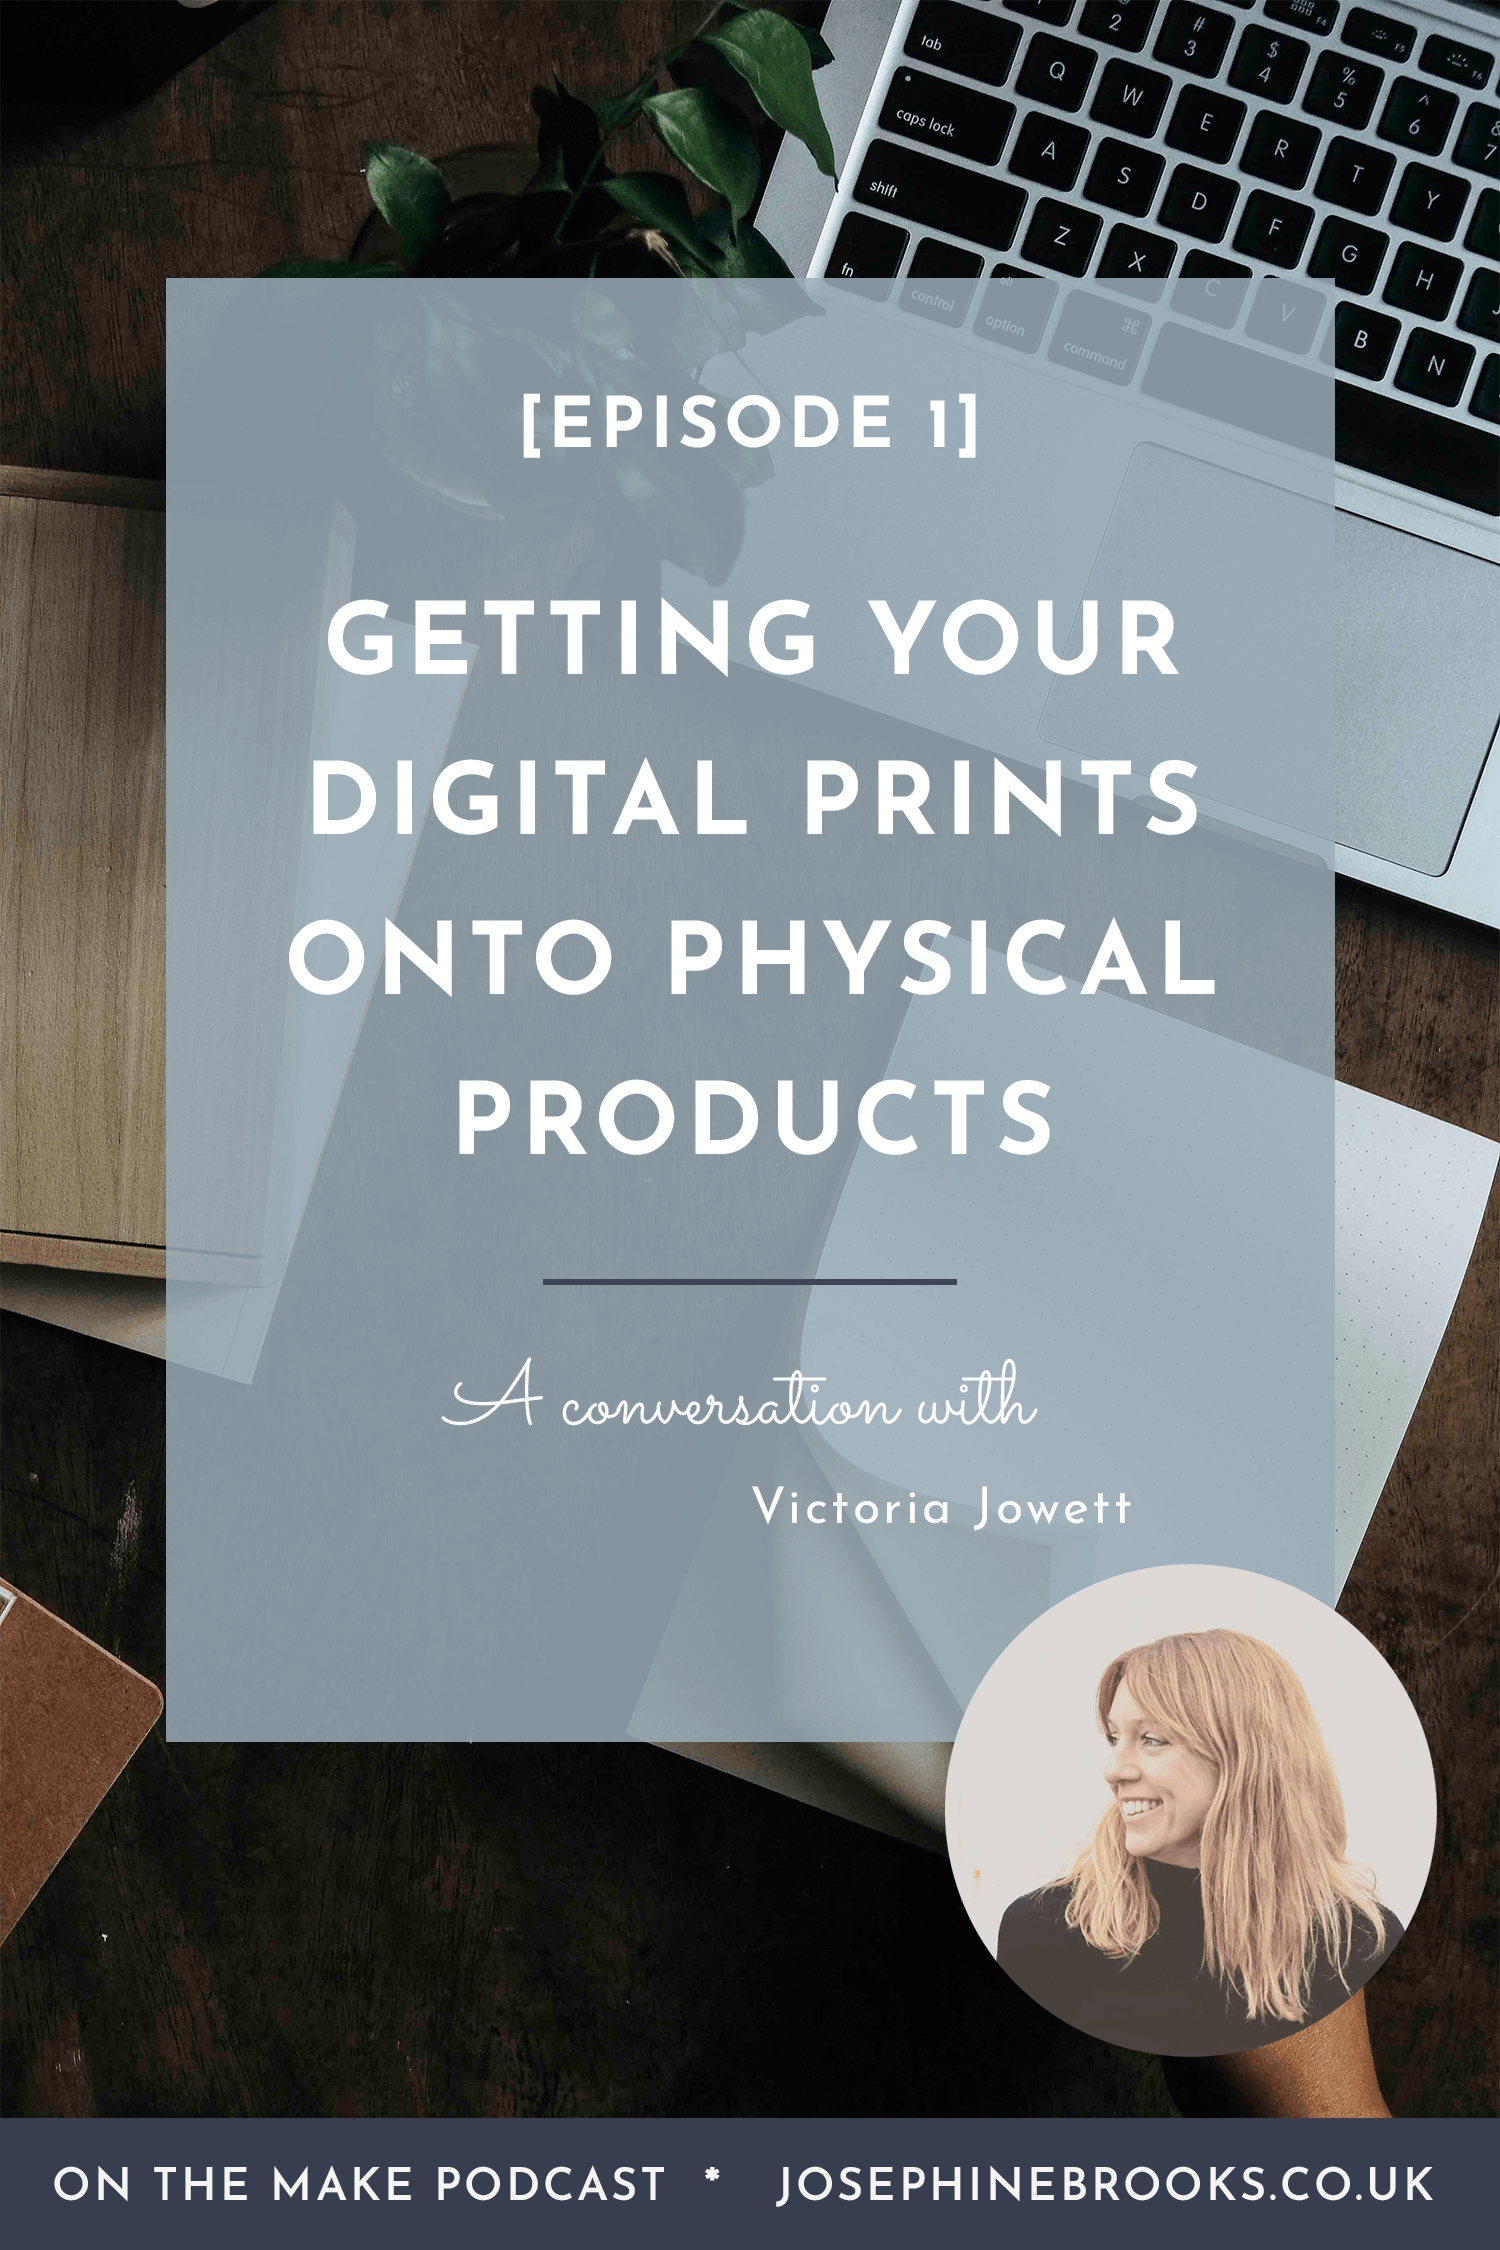 On the make Podcast Episode 1 - getting your digital prints onto products, Surface pattern design, graphic design, manufacturing products